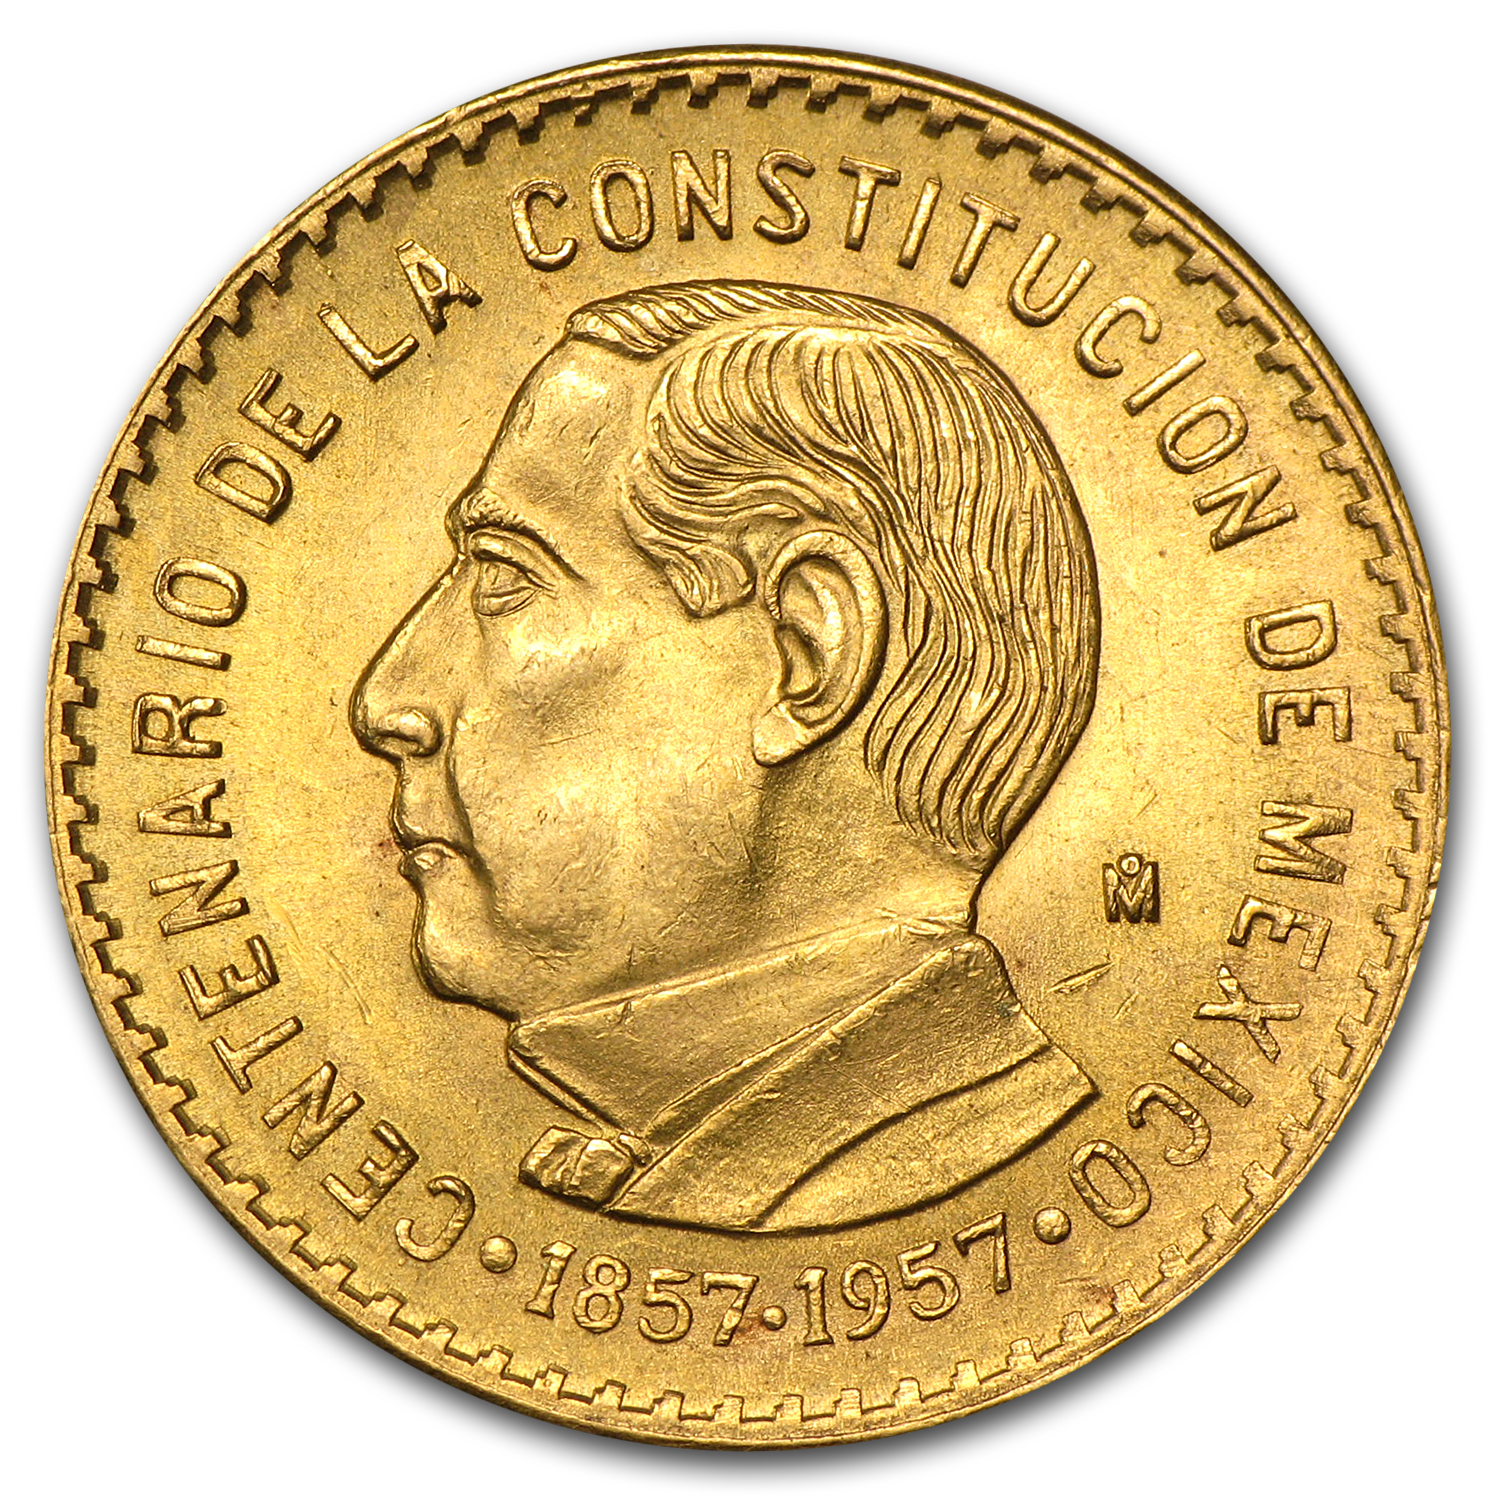 1957 Mexico Gold Centennial of the Constitution